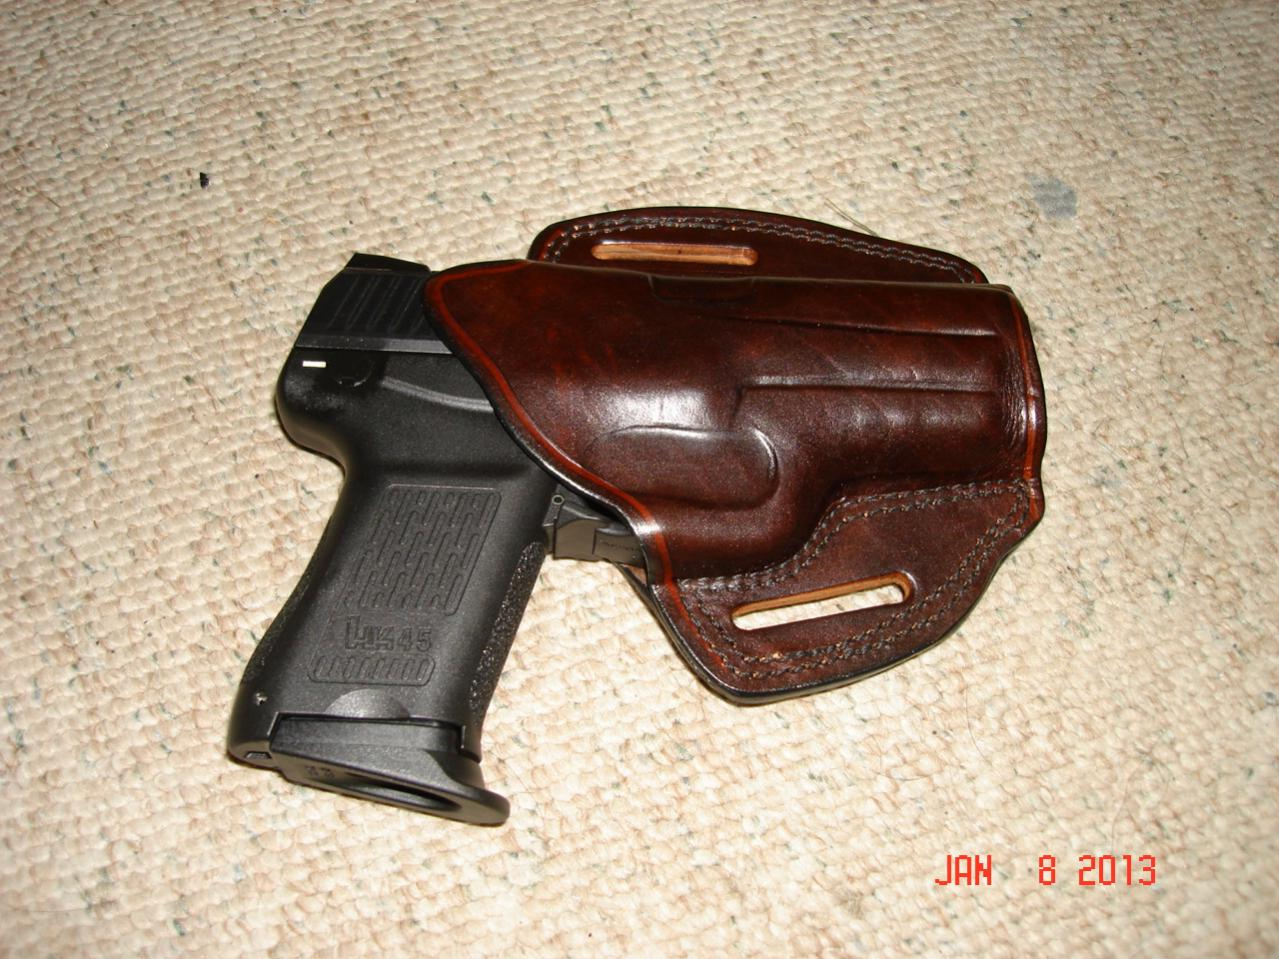 New Kirkpatrick Holster for HK-45c-holster-002.jpg